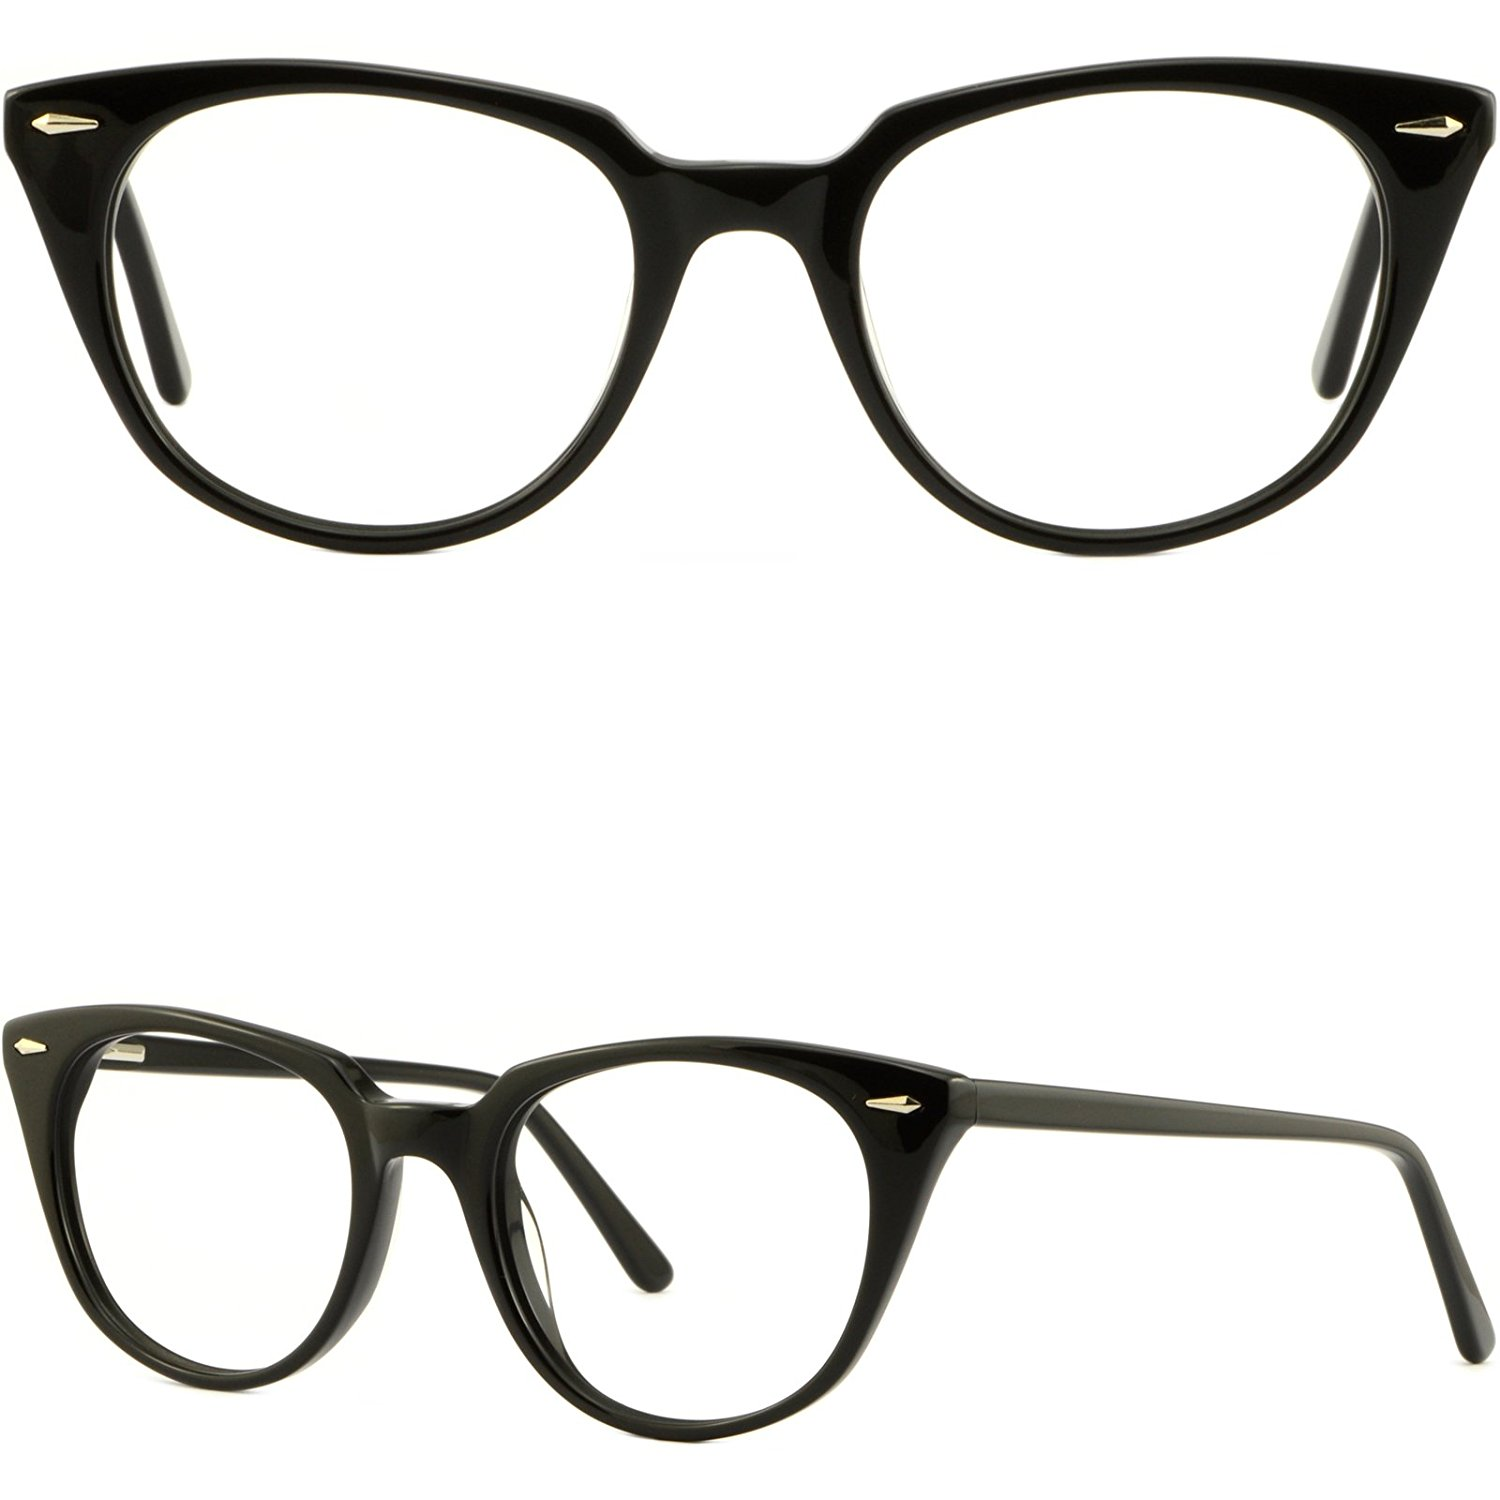 90394cd352 Get Quotations · Black Womens Cateye Frames Acetate Prescription Eyeglasses  Glasses Spring Hinges